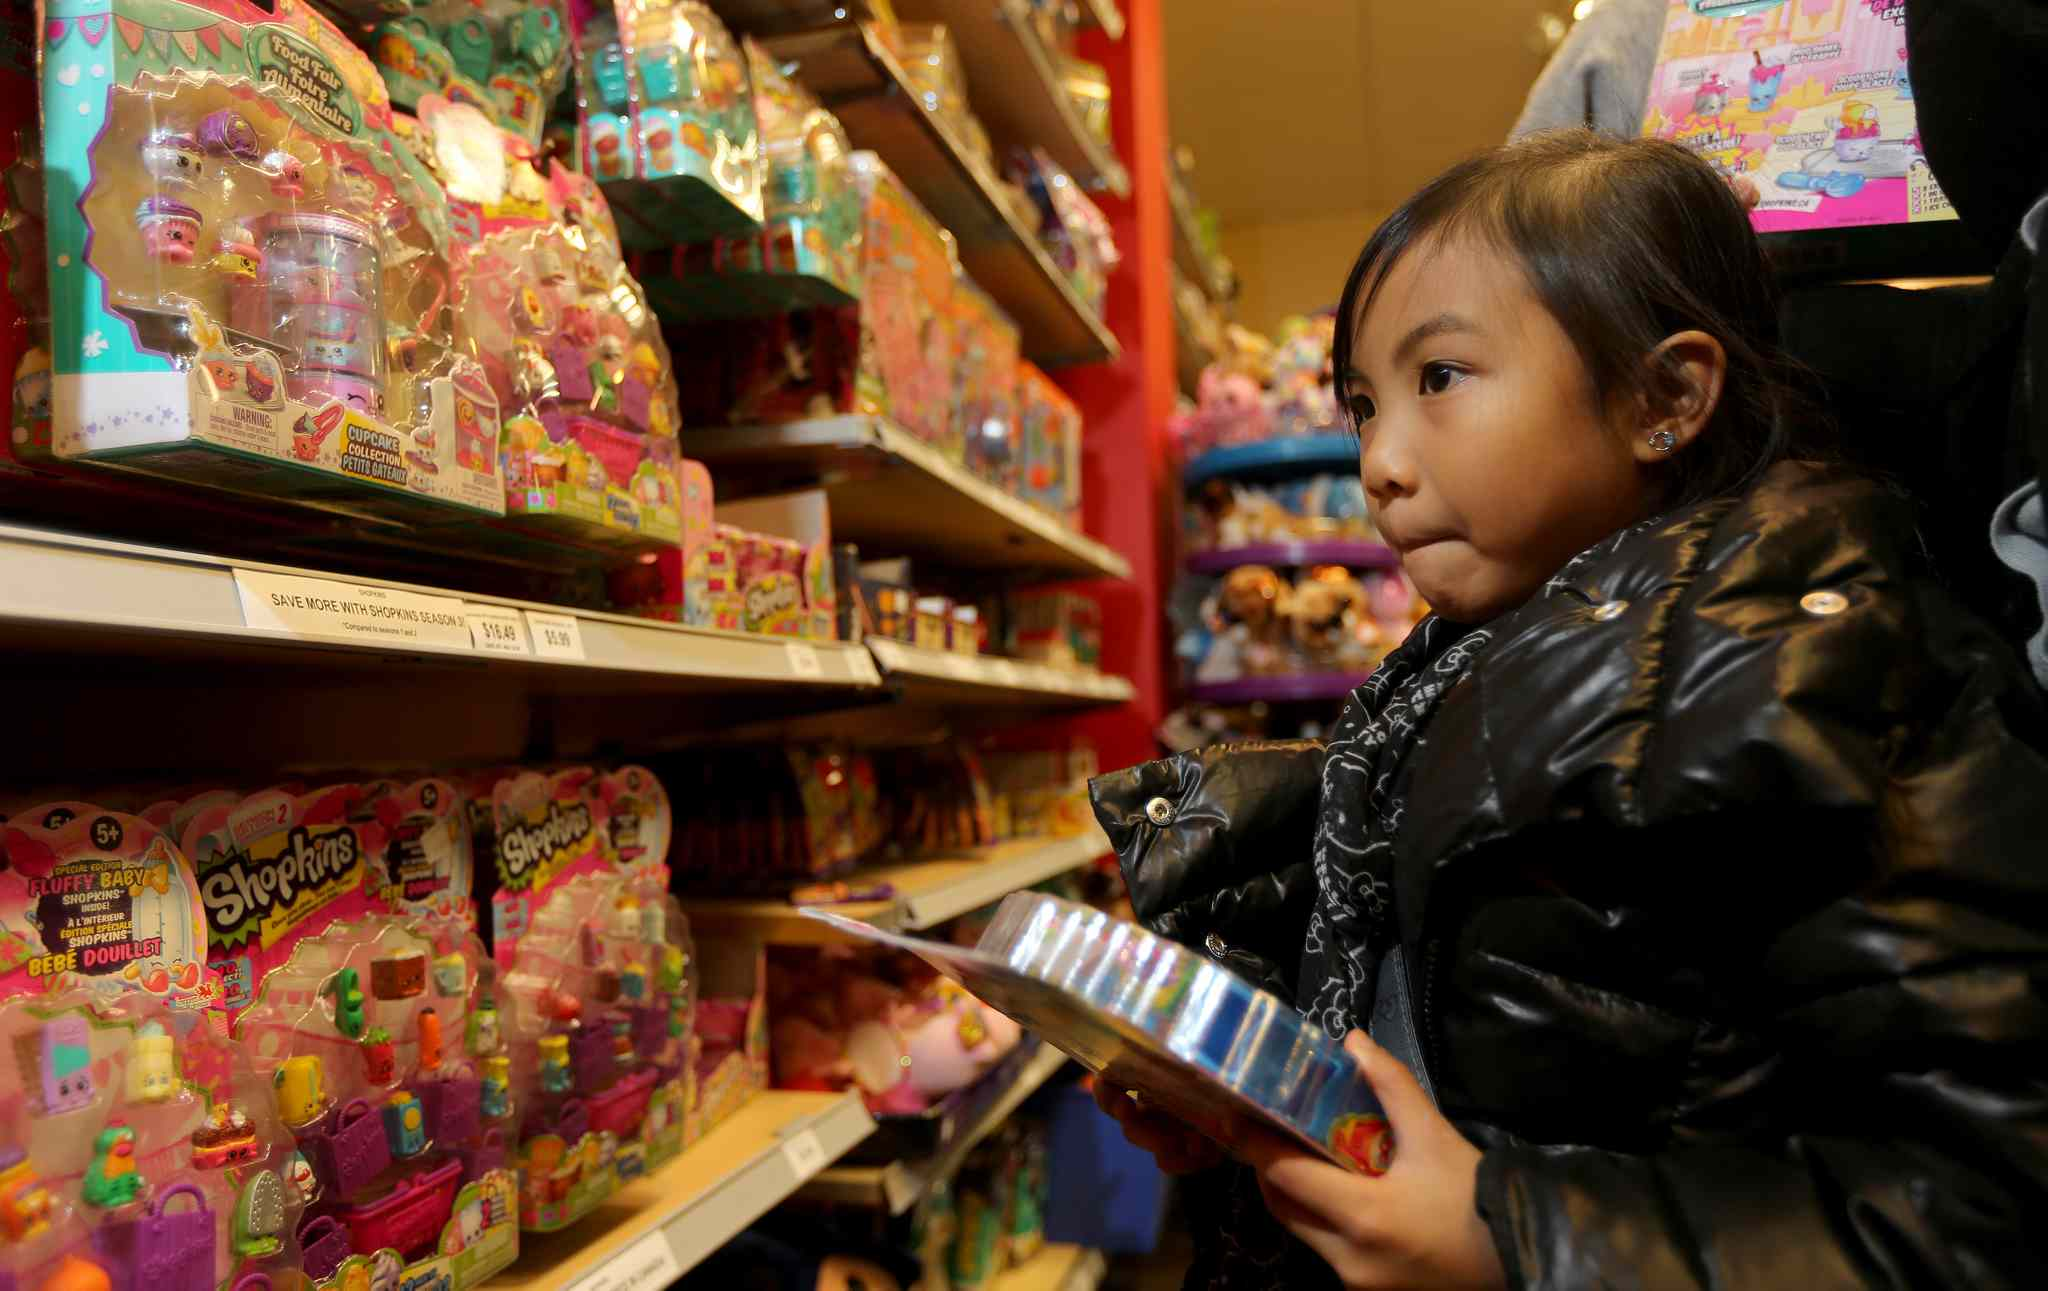 Brooklyn Manzano, 5, looks at Shopkins in the Showcase Store at Polo Park.